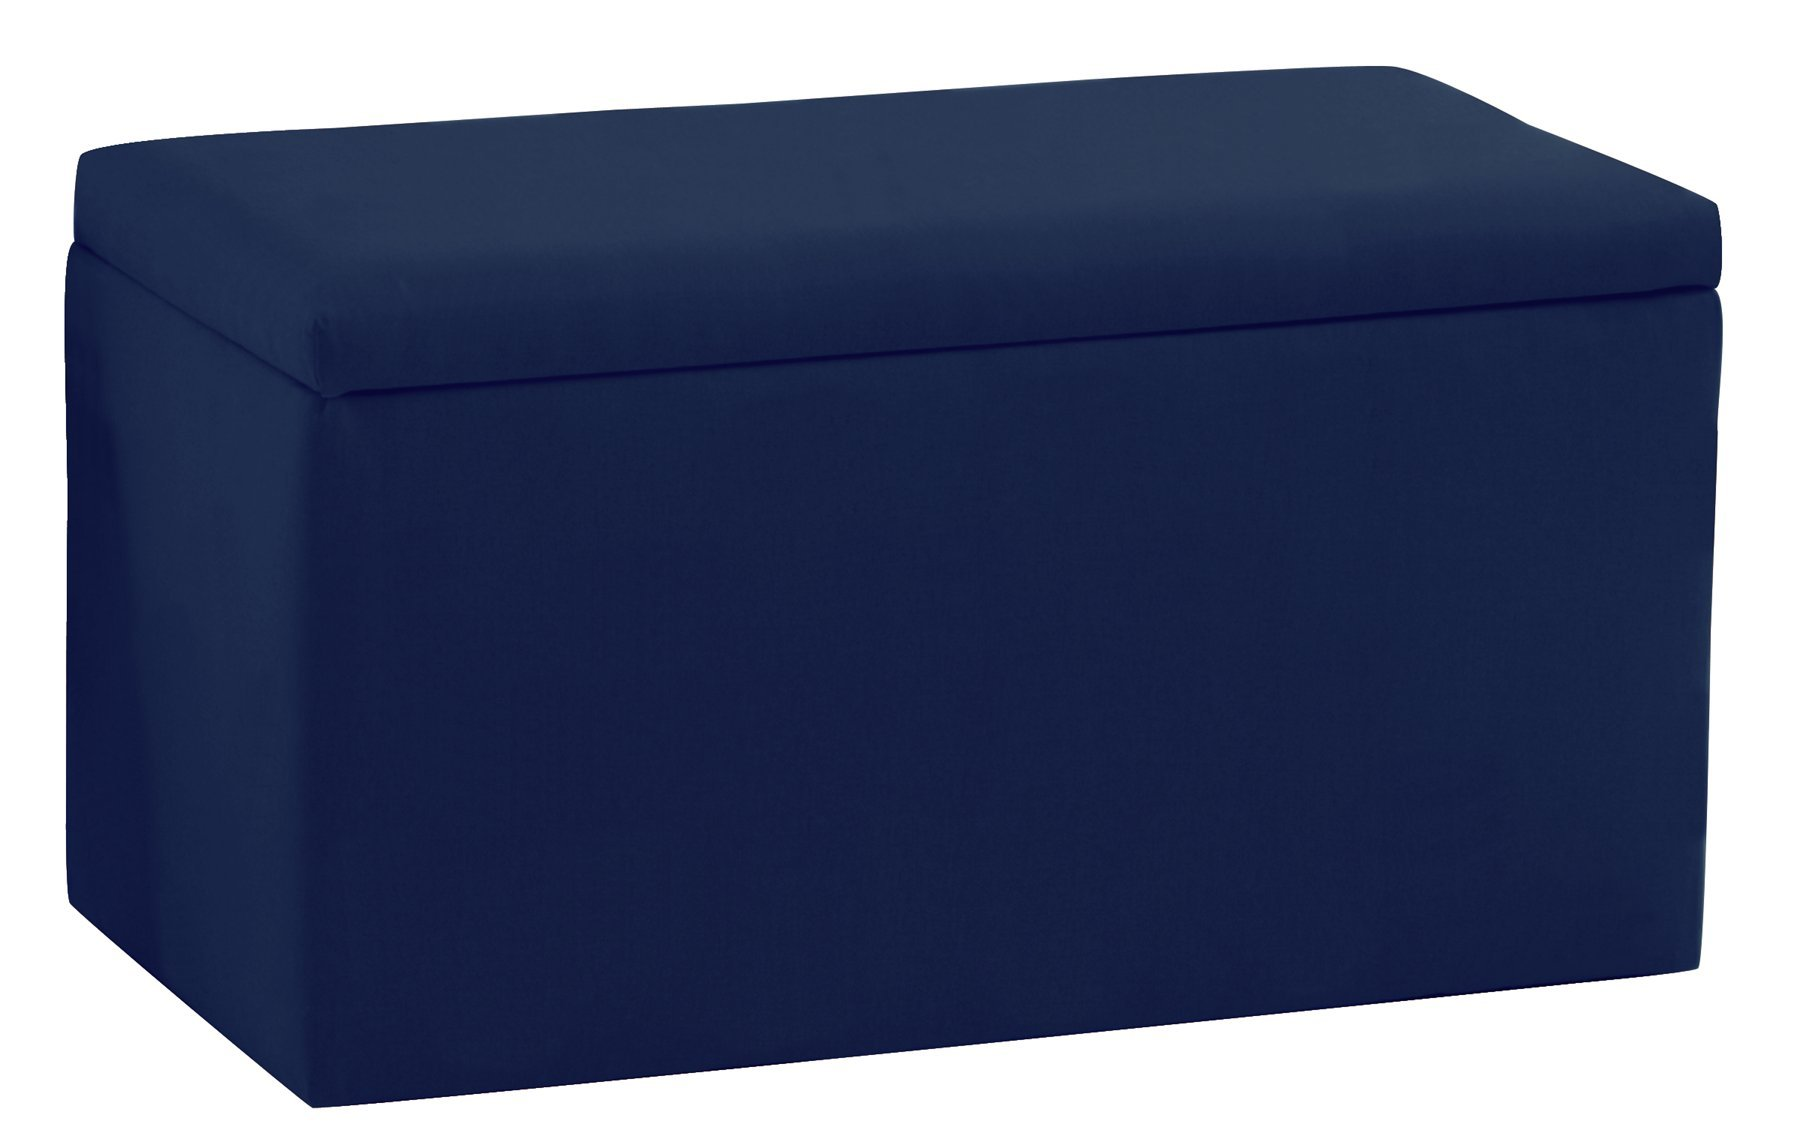 Smarty Pants Kid'S Storage Bench By Skyline Furniture In Navy Cotton